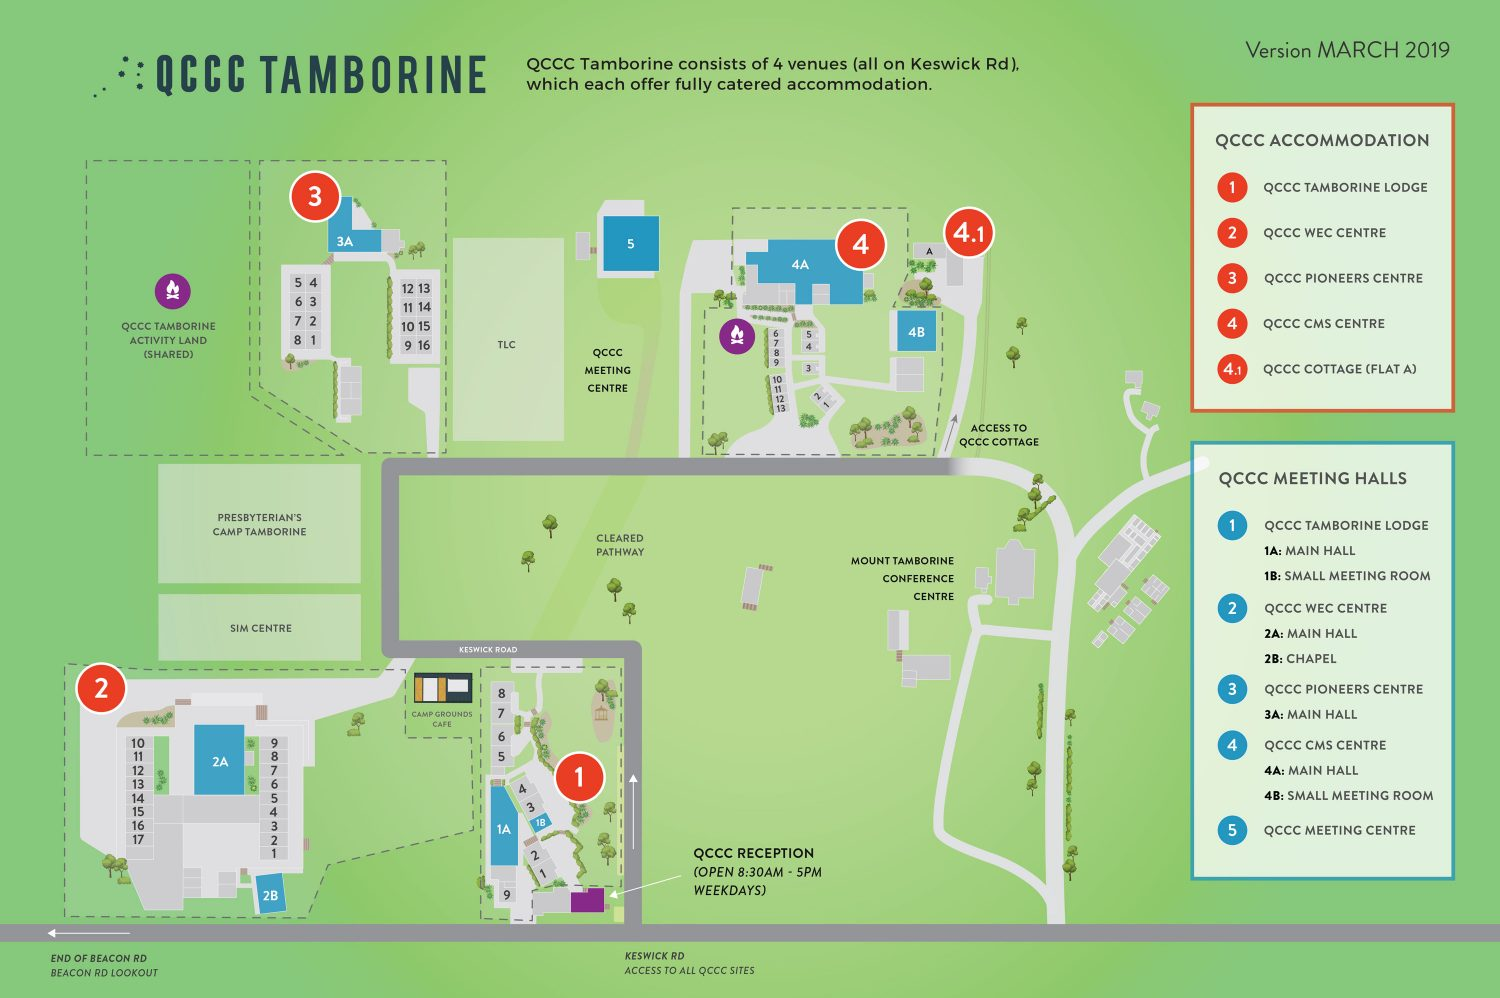 QCCC-Tamborine---Accommodation-and-Main-Halls-Layout